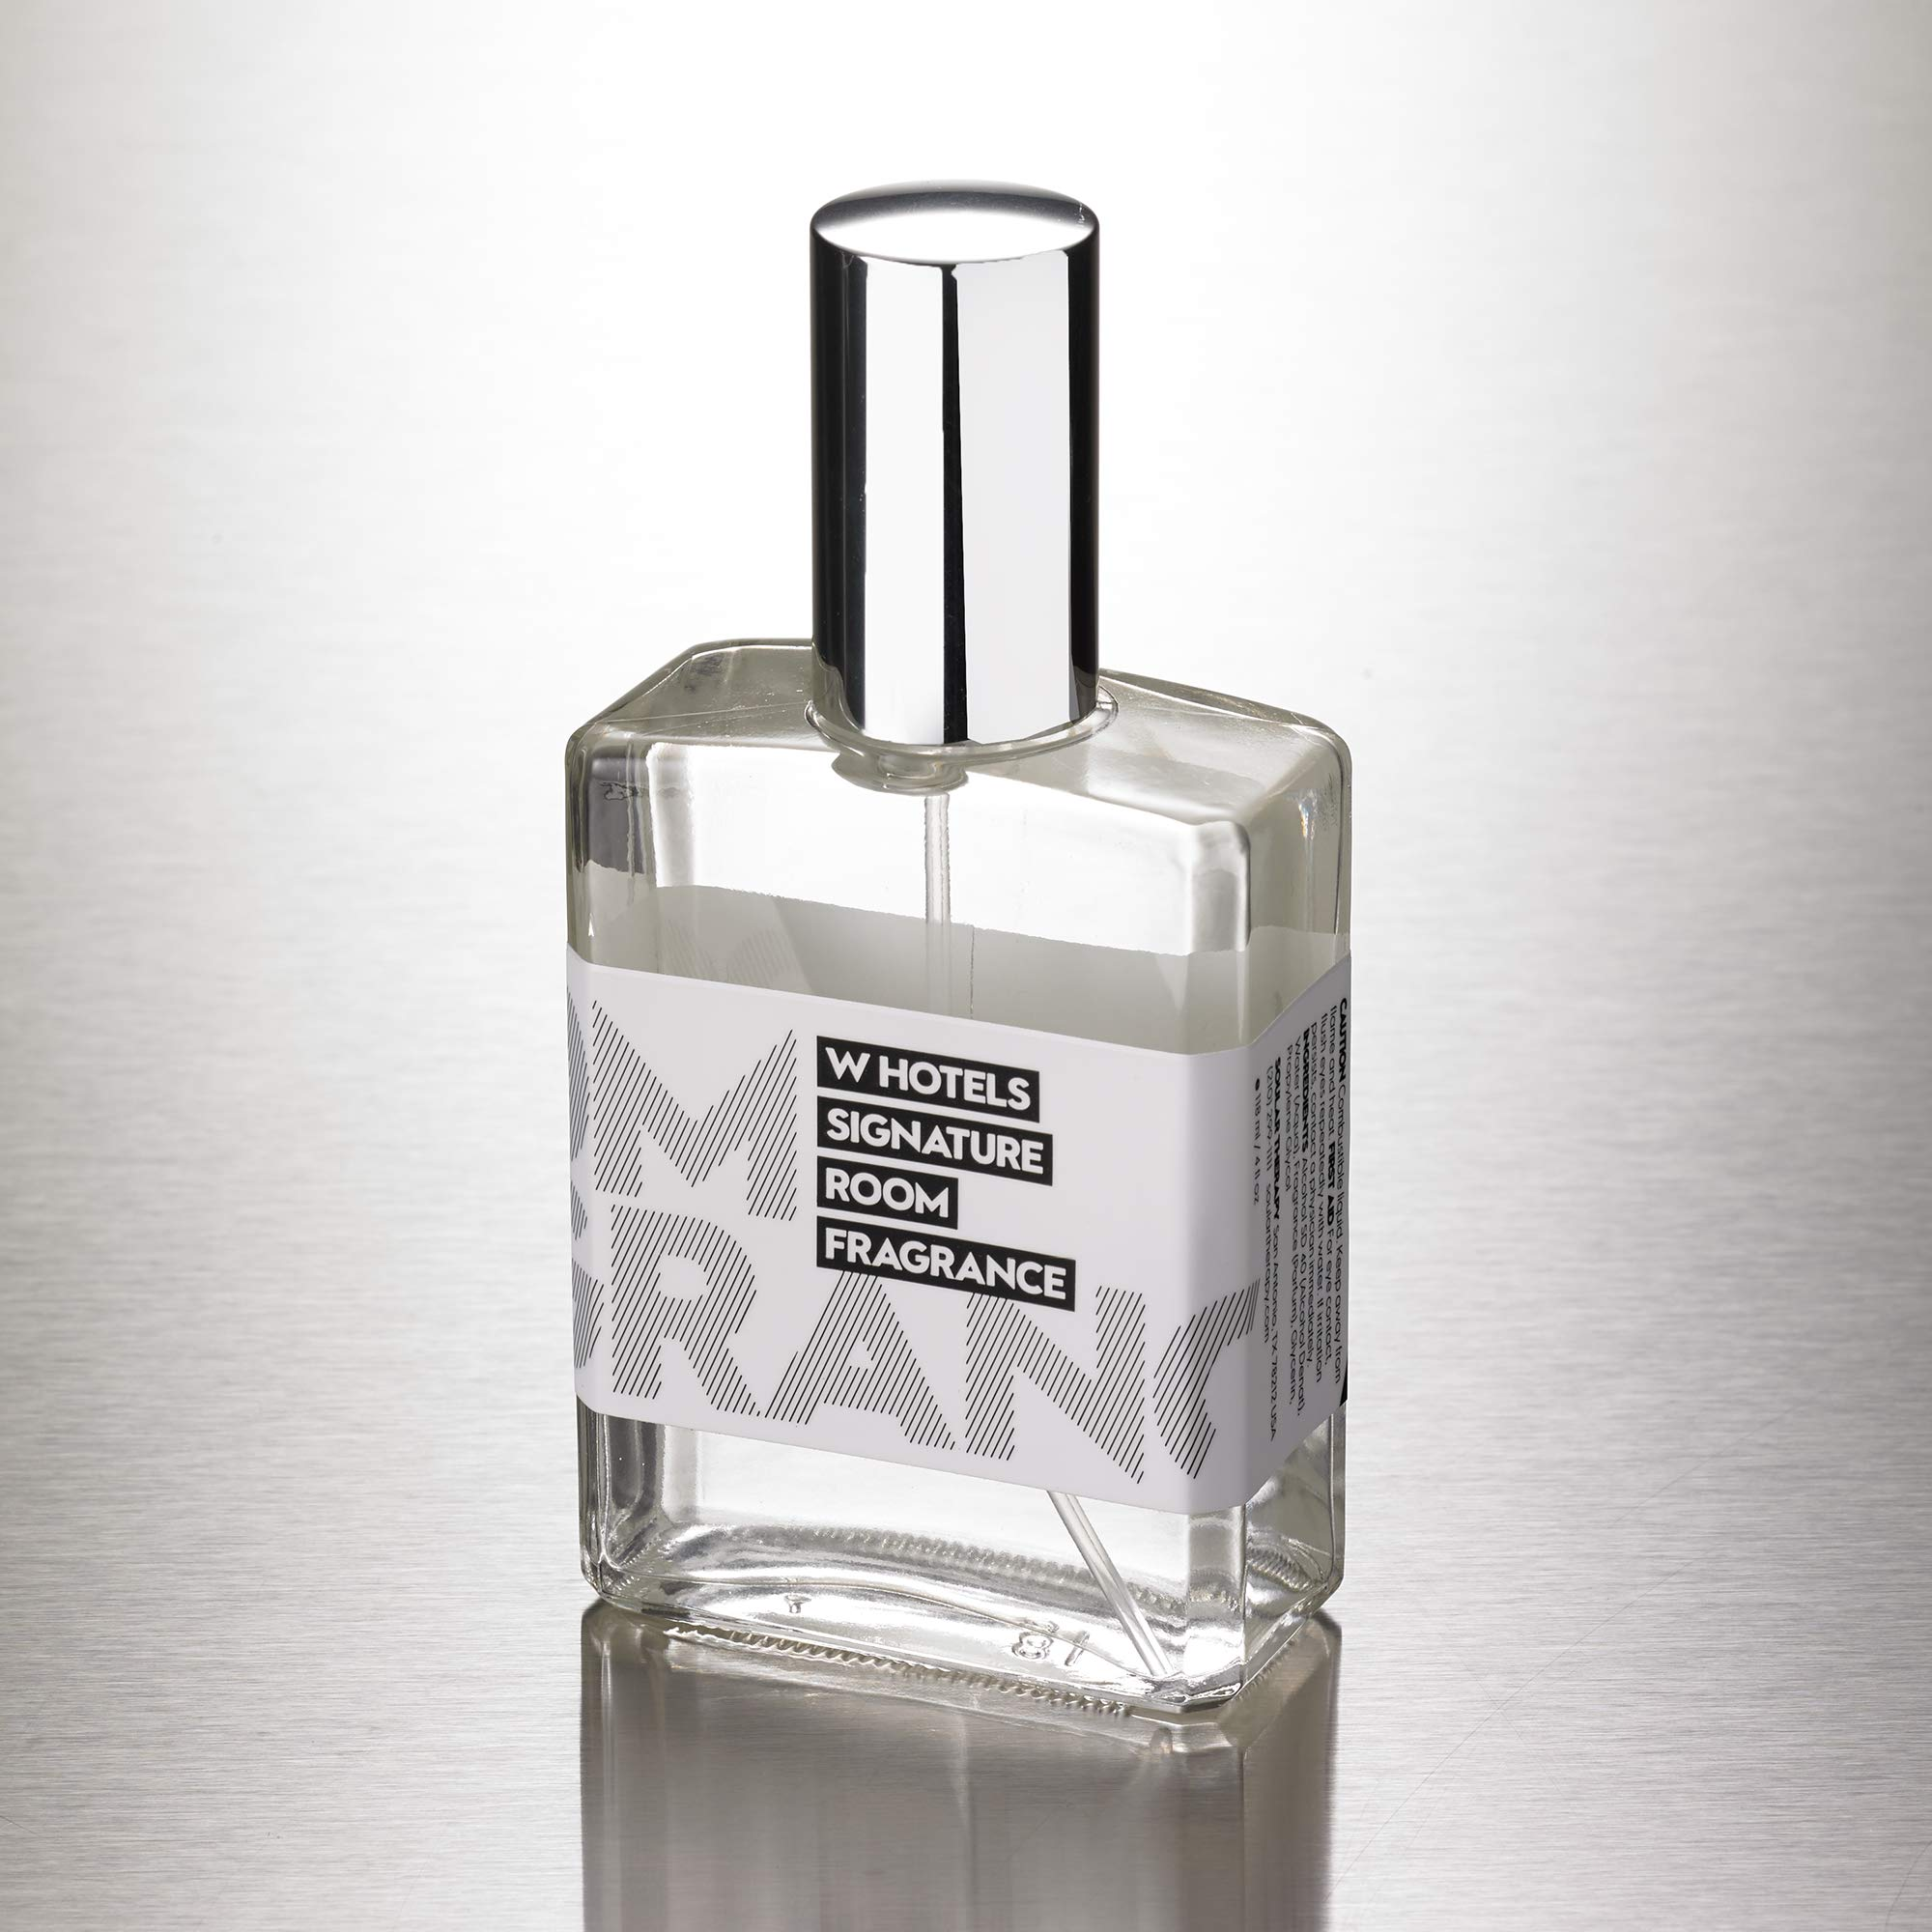 W Hotels Room Spray - Home Fragrance Spray with Signature W Scent - 4 oz. by W Hotels